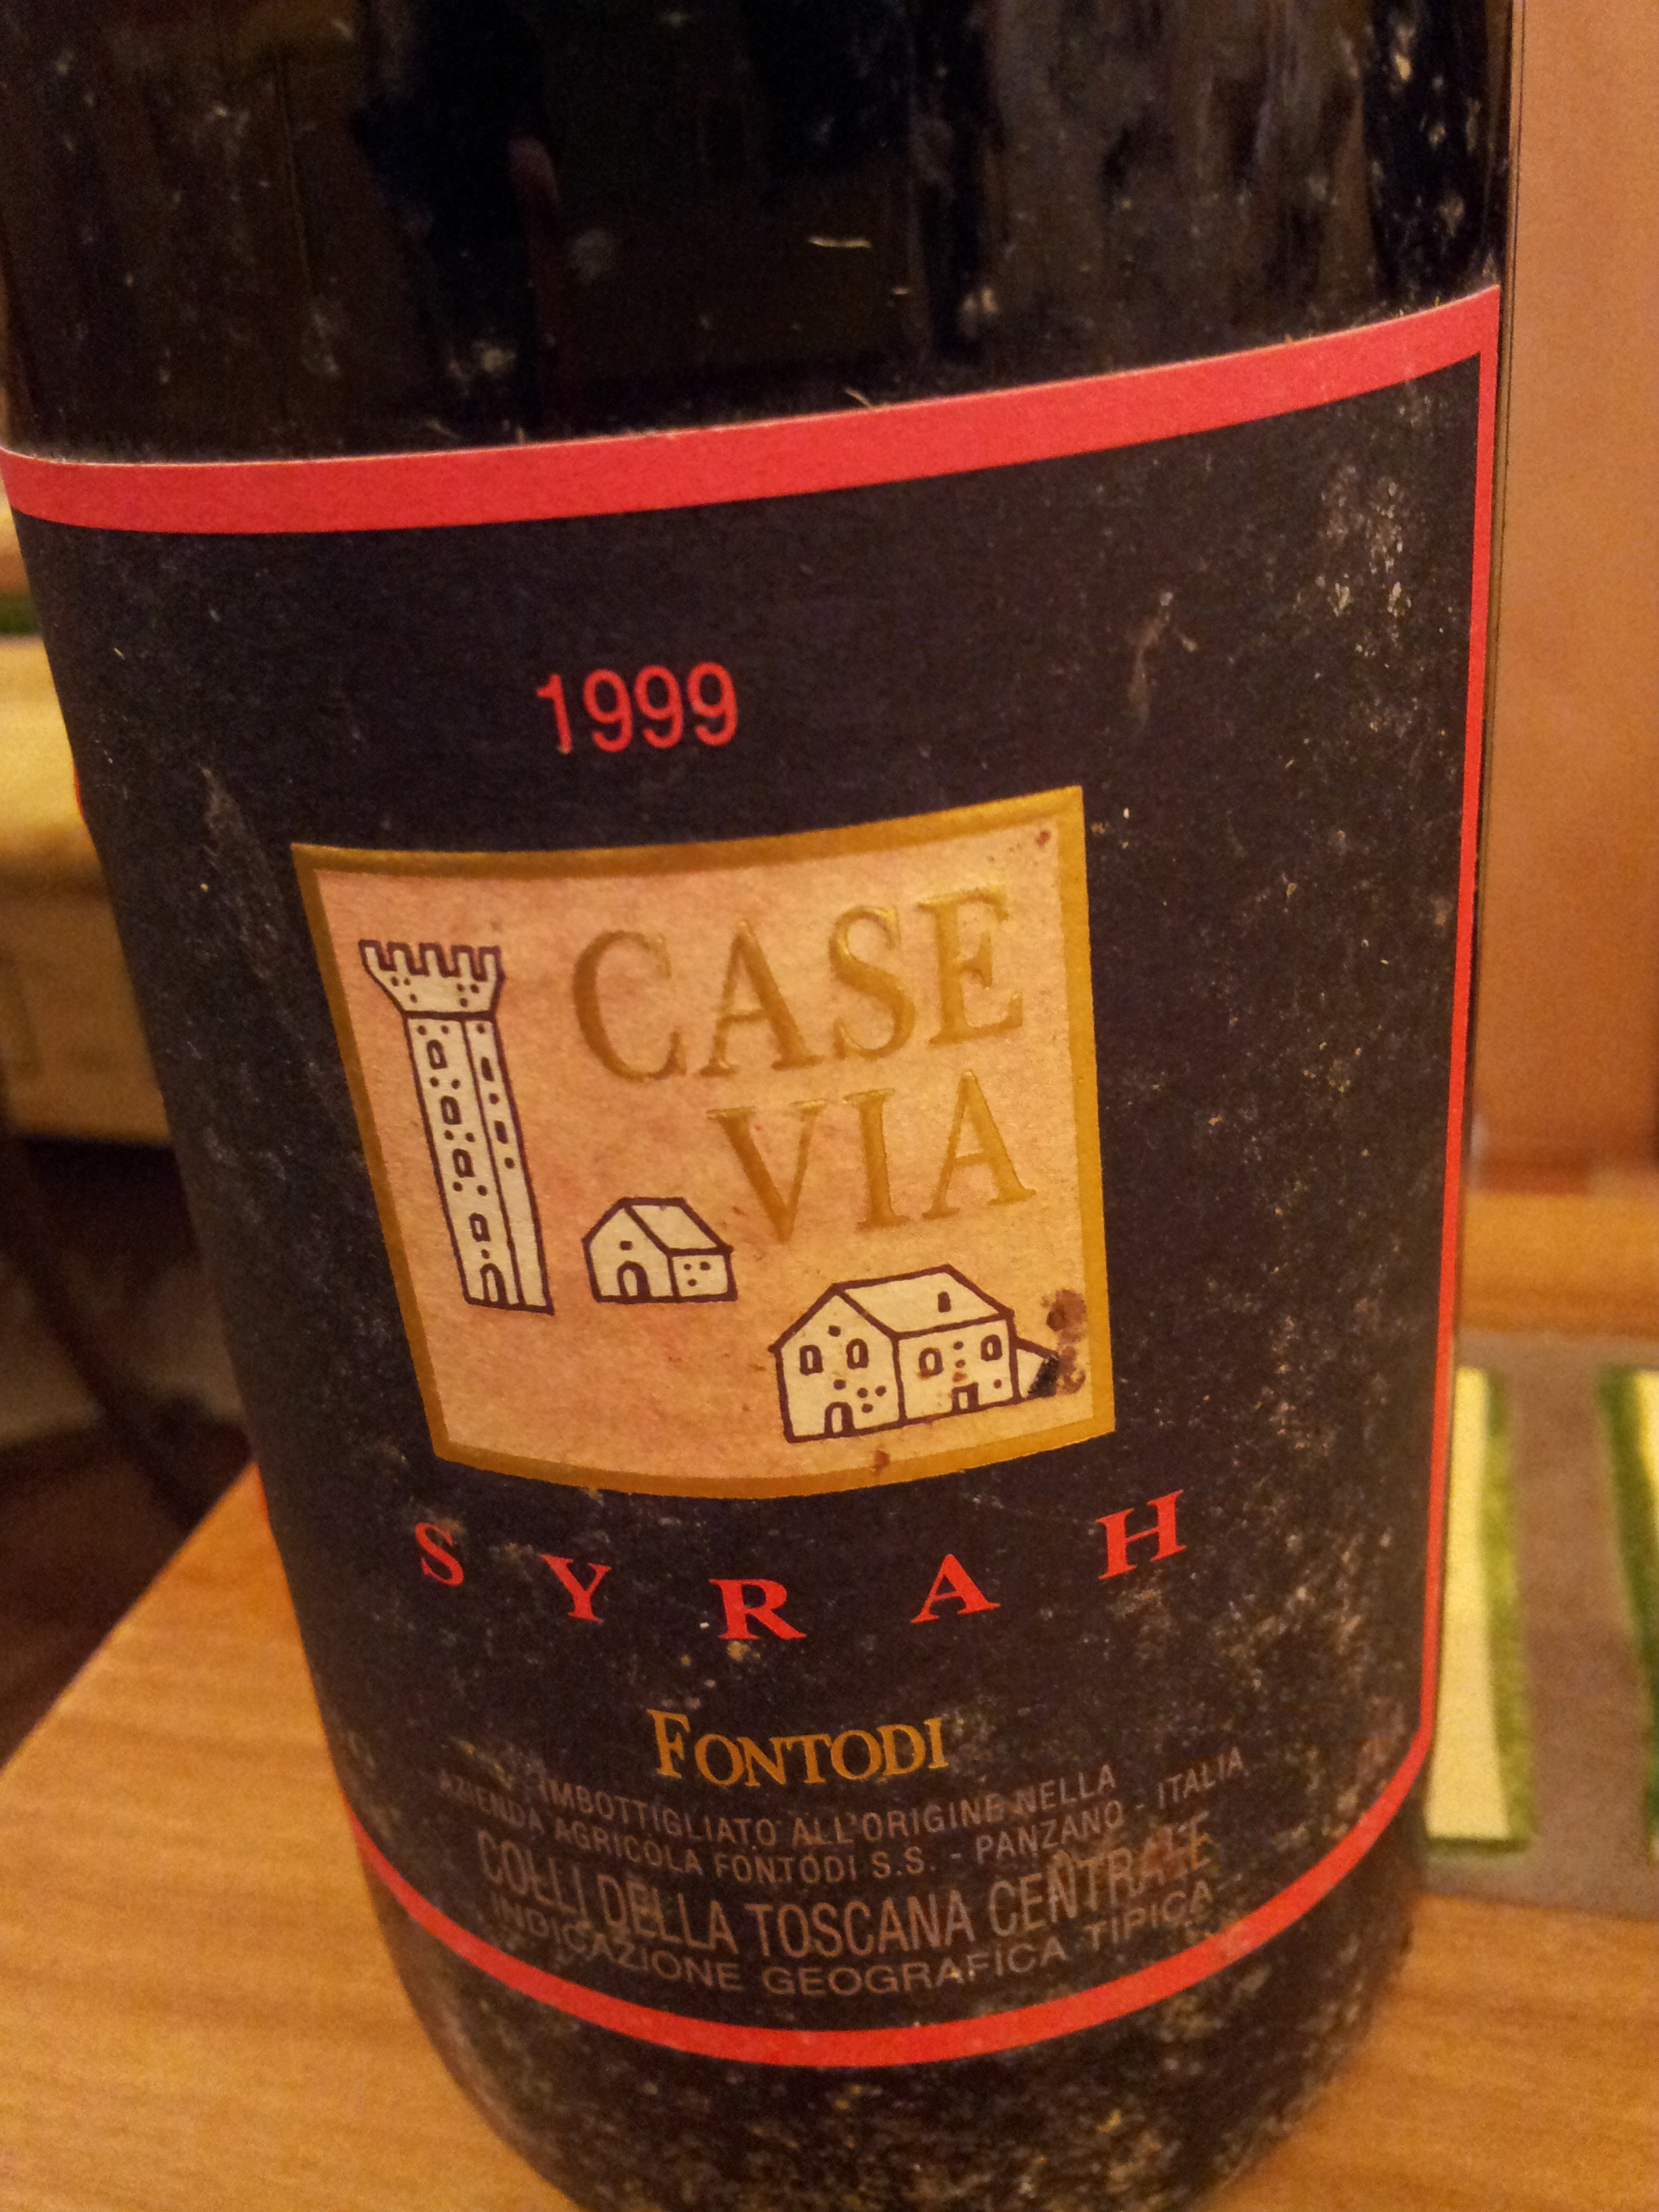 Fontodi Case Via Syrah 1999